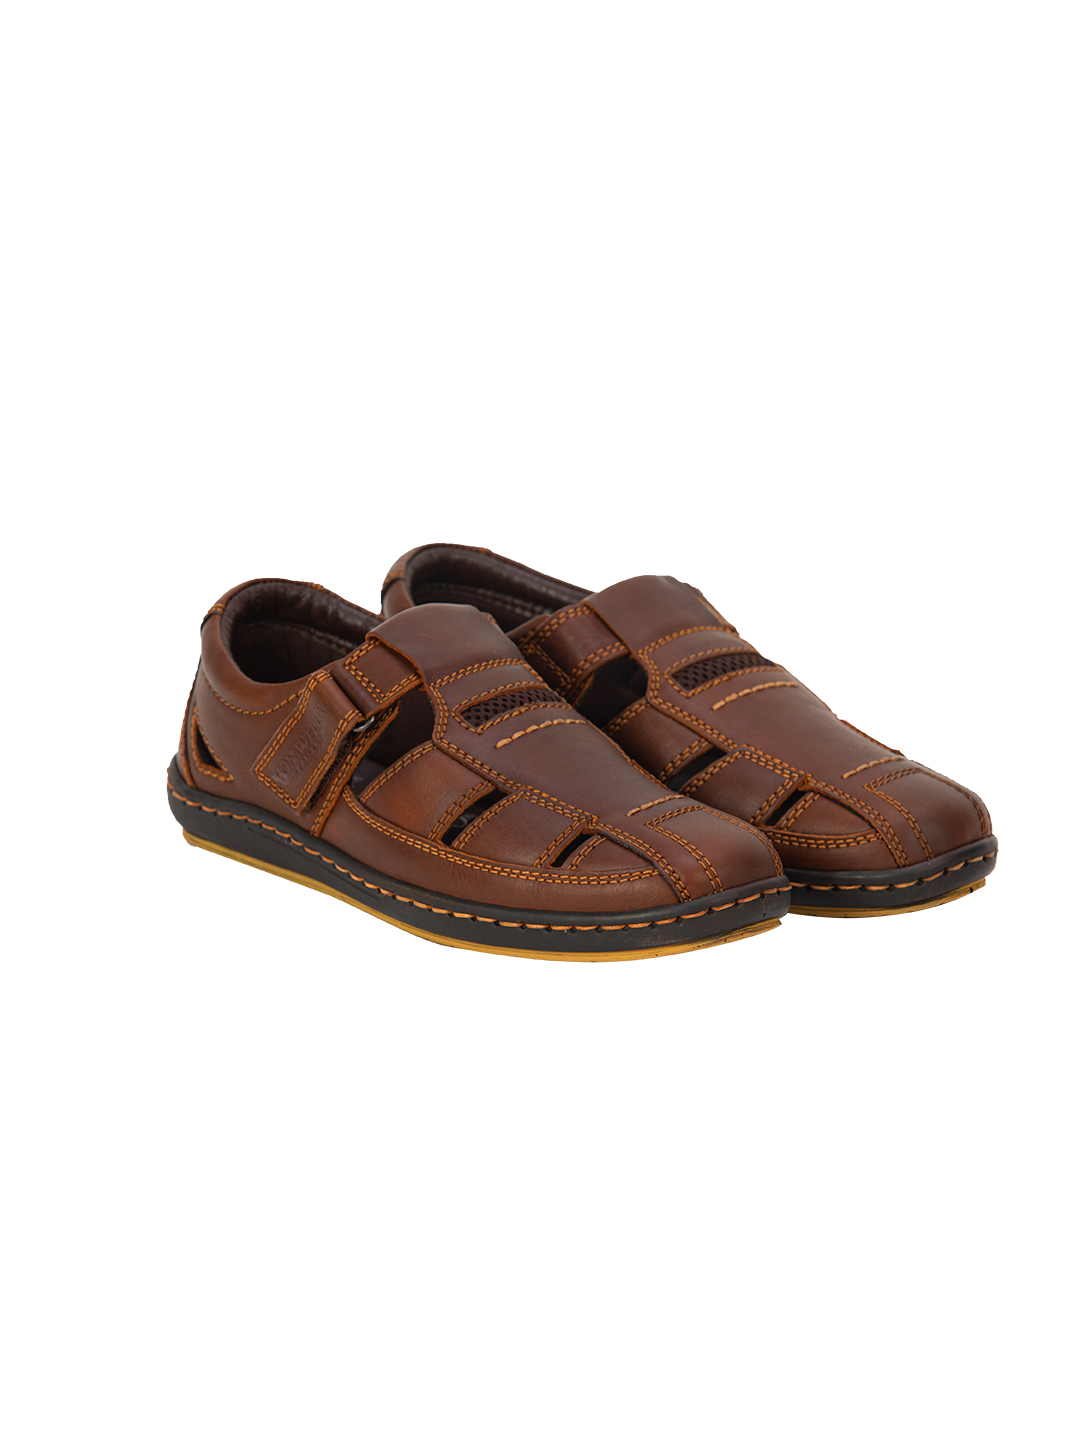 Buy VON WELLX GERMANY COMFORT BROWN CANTER SANDALS In Delhi